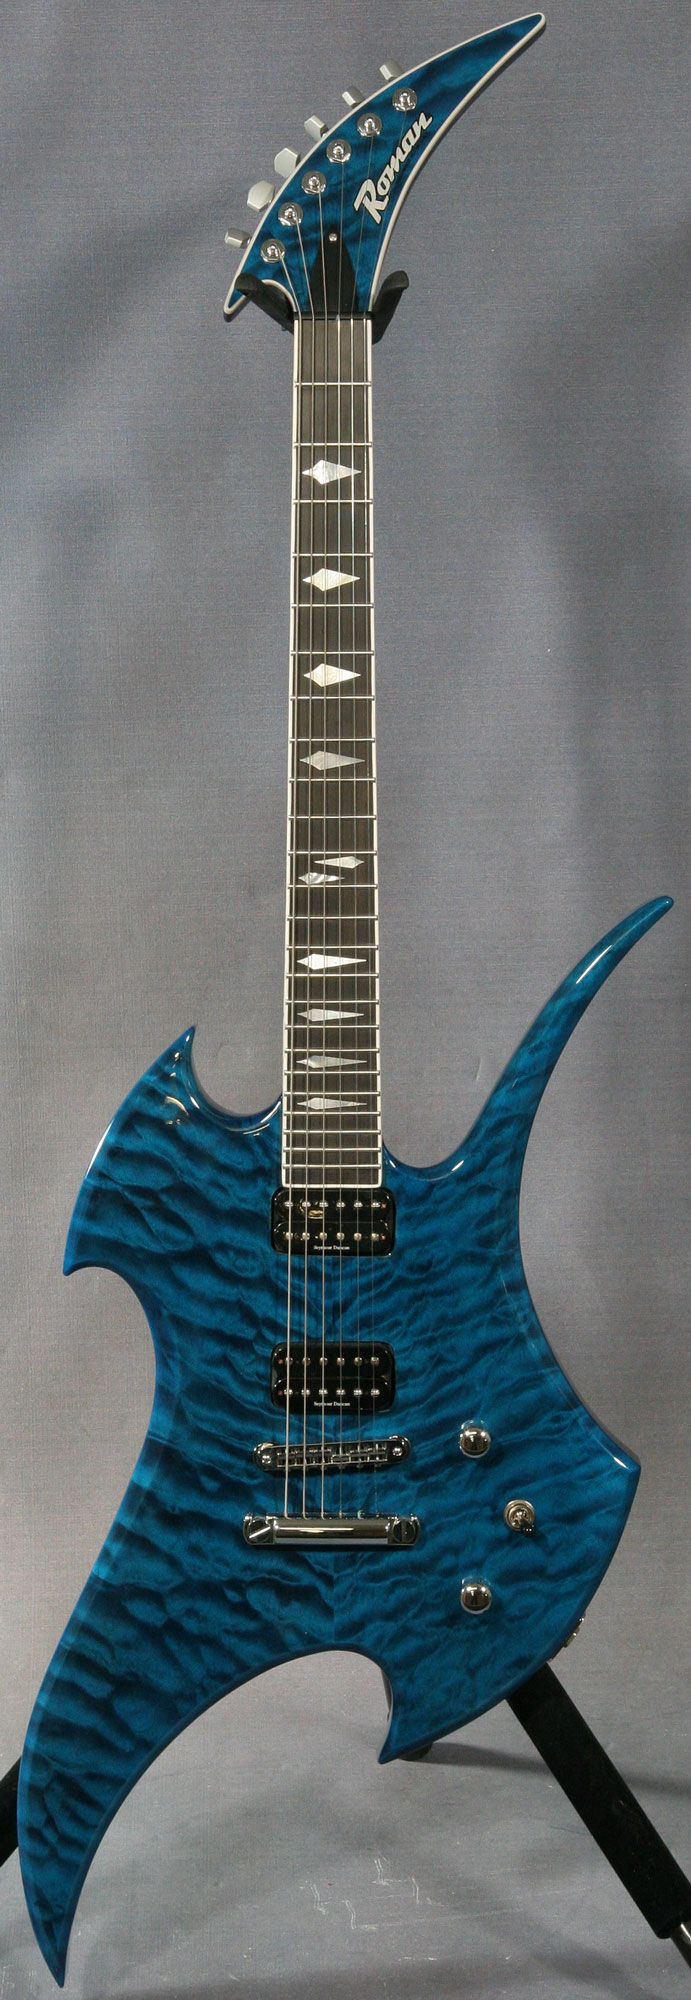 28 best images about guitar painting on pinterest jazz firebird and peacock blue. Black Bedroom Furniture Sets. Home Design Ideas